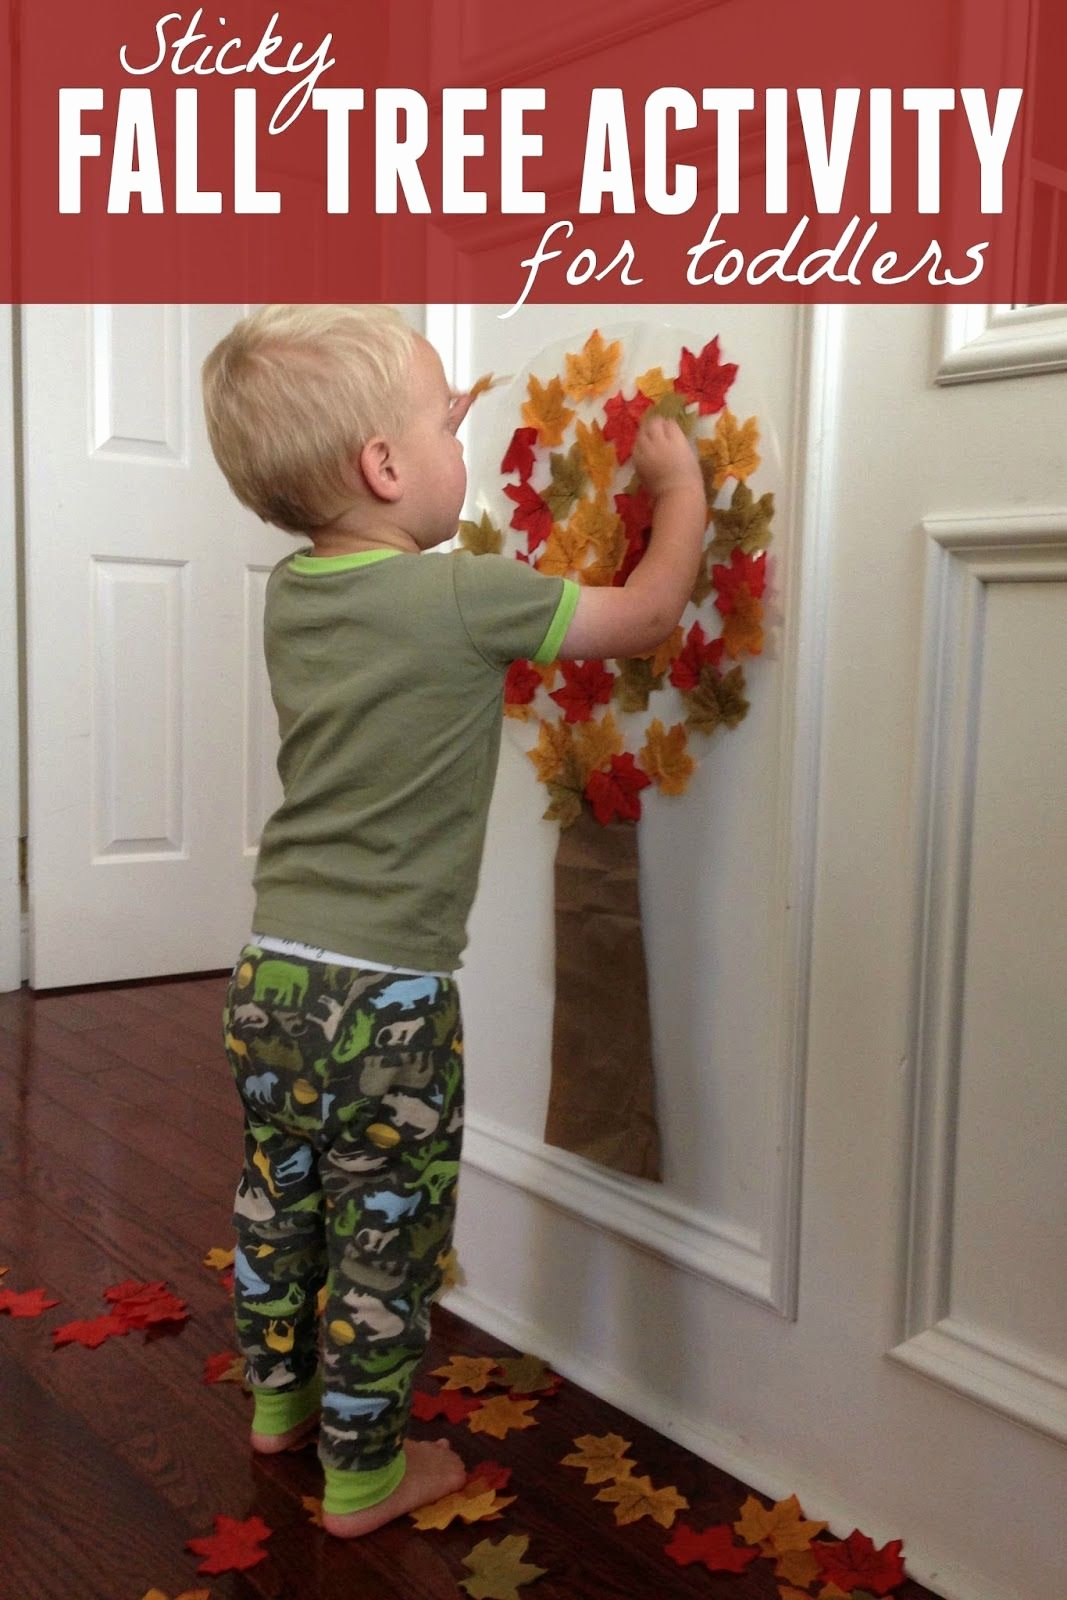 Lesson Plans for toddlers New Easy Fall Tree Activity for toddlers